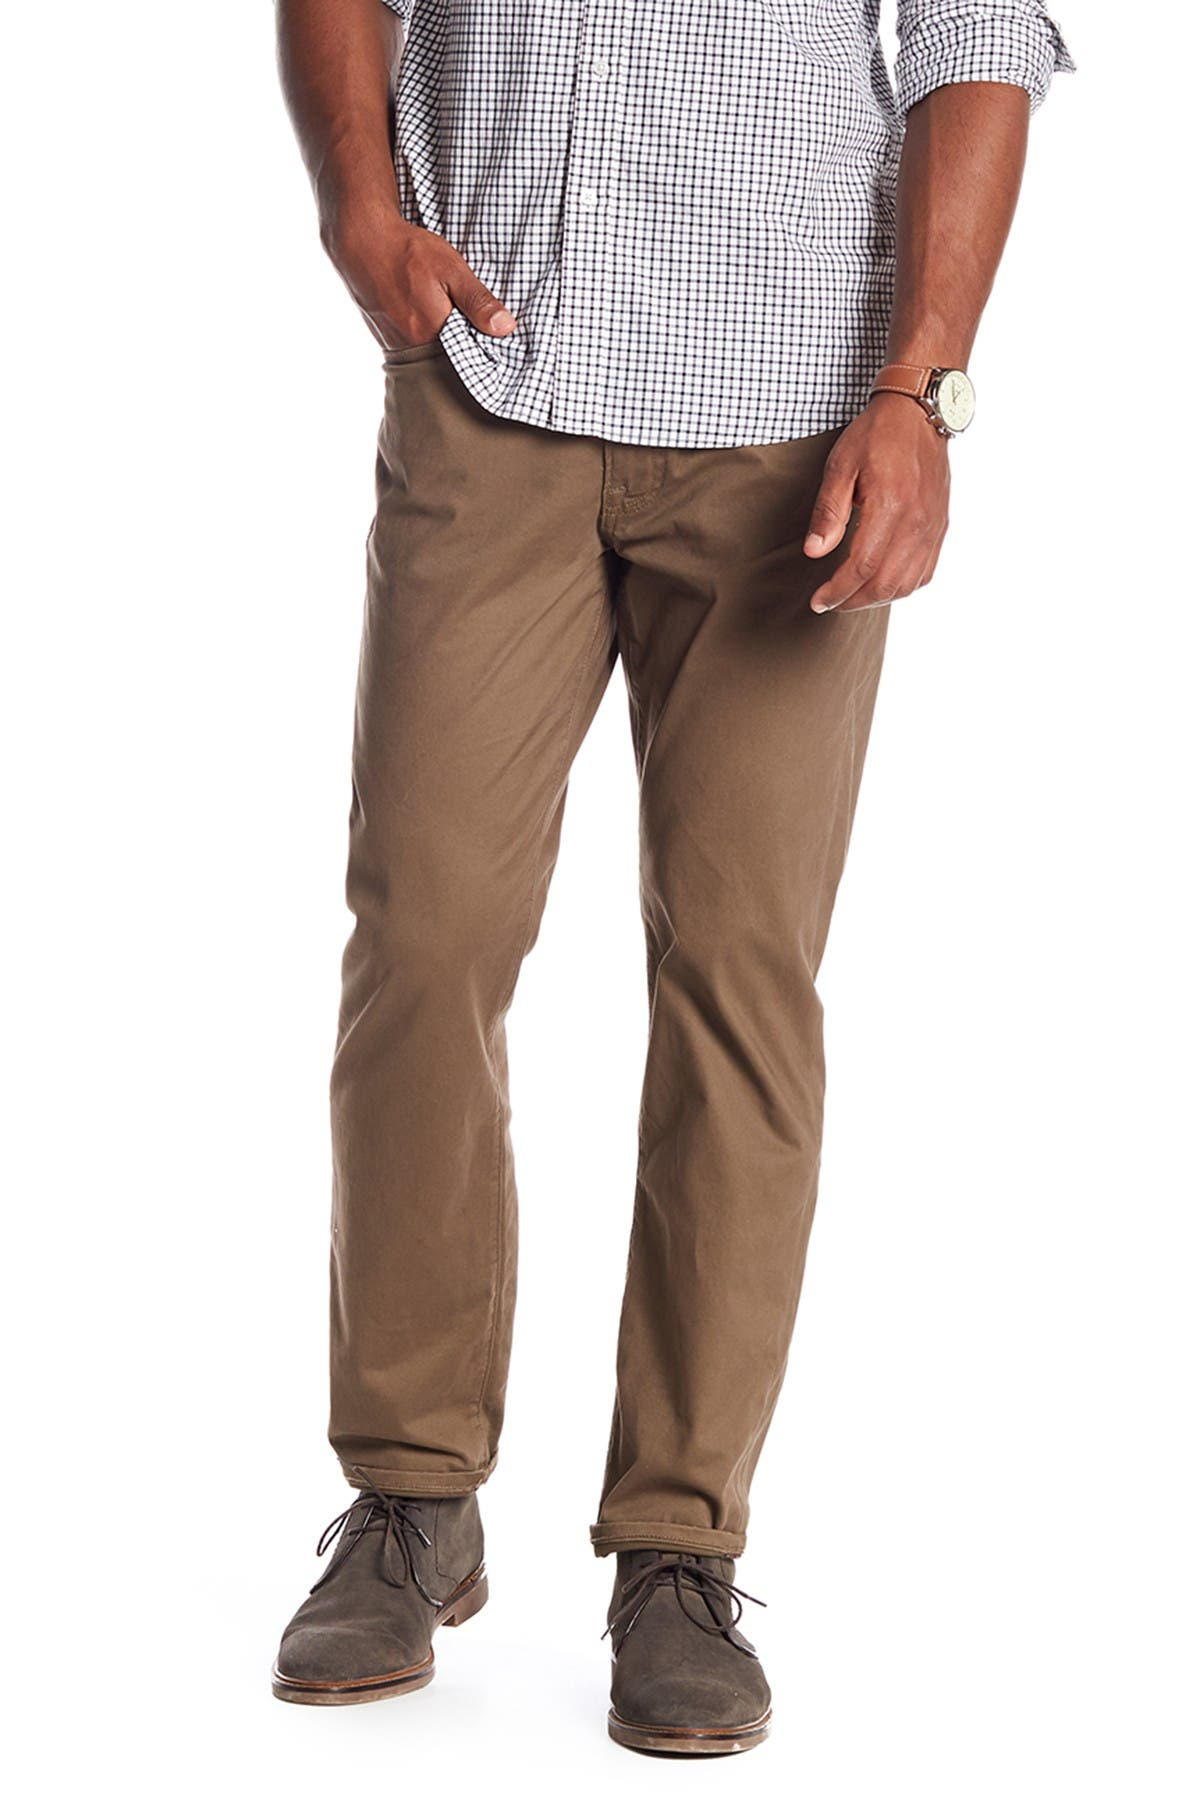 "Image of Lucky Brand 121 Heritage Slim Fit Pants - 30-34"" Inseam"